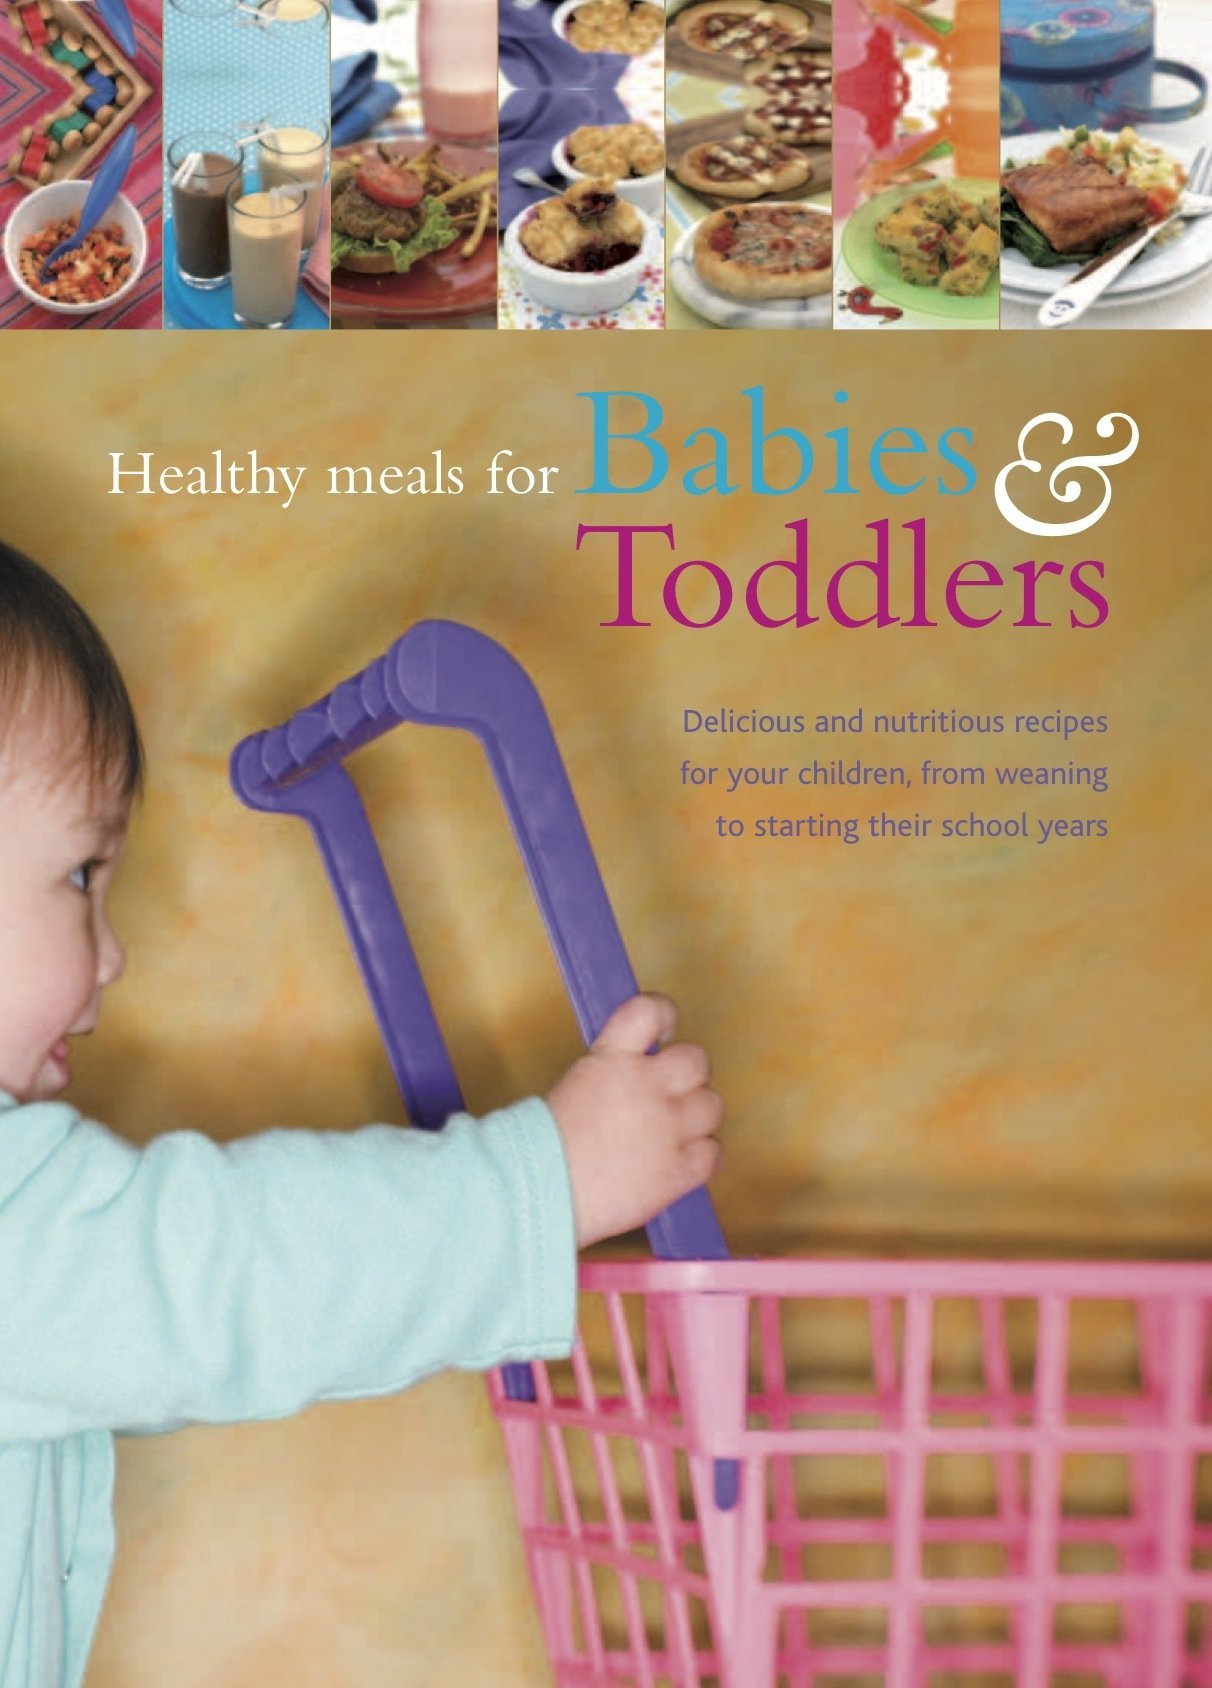 Healthy Meals for Babies & Toddlers (Love Food) ebook